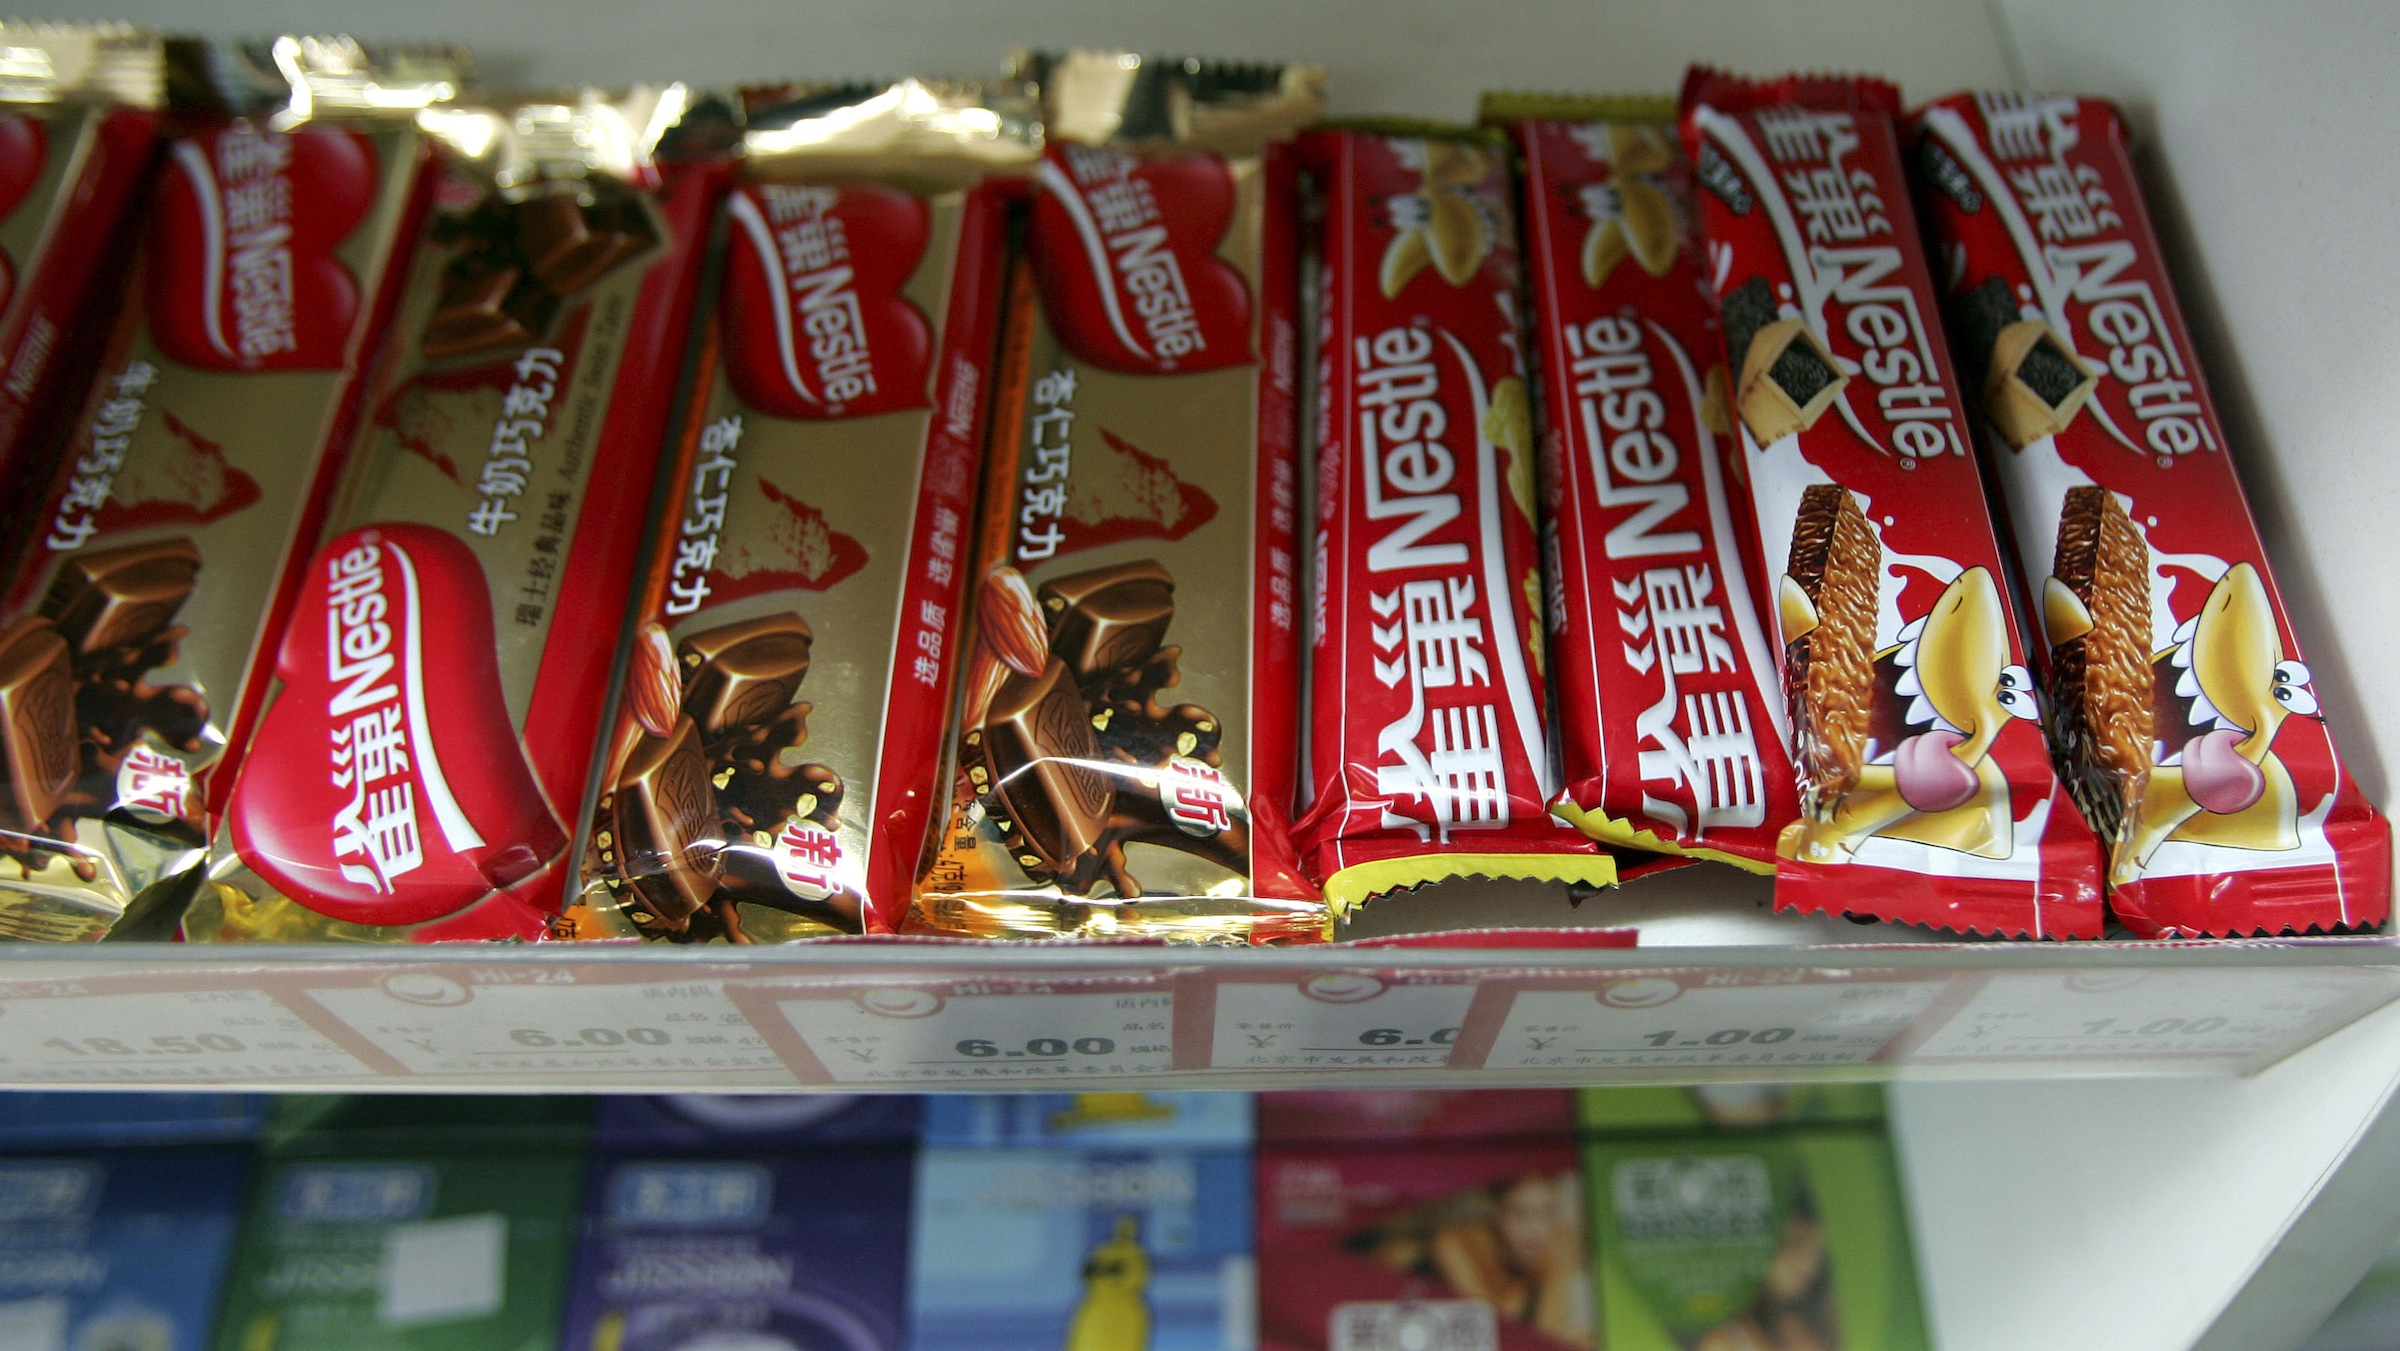 Nestle chocolate bars are seen in a store in Beijing Friday, April 20, 2007. America's leading candymaker, The Hershey Co., is seeking to join its top competitors on more candy shelves in places like India and China as it makes a bid to expand its global presence.(AP Photo/Greg Baker)